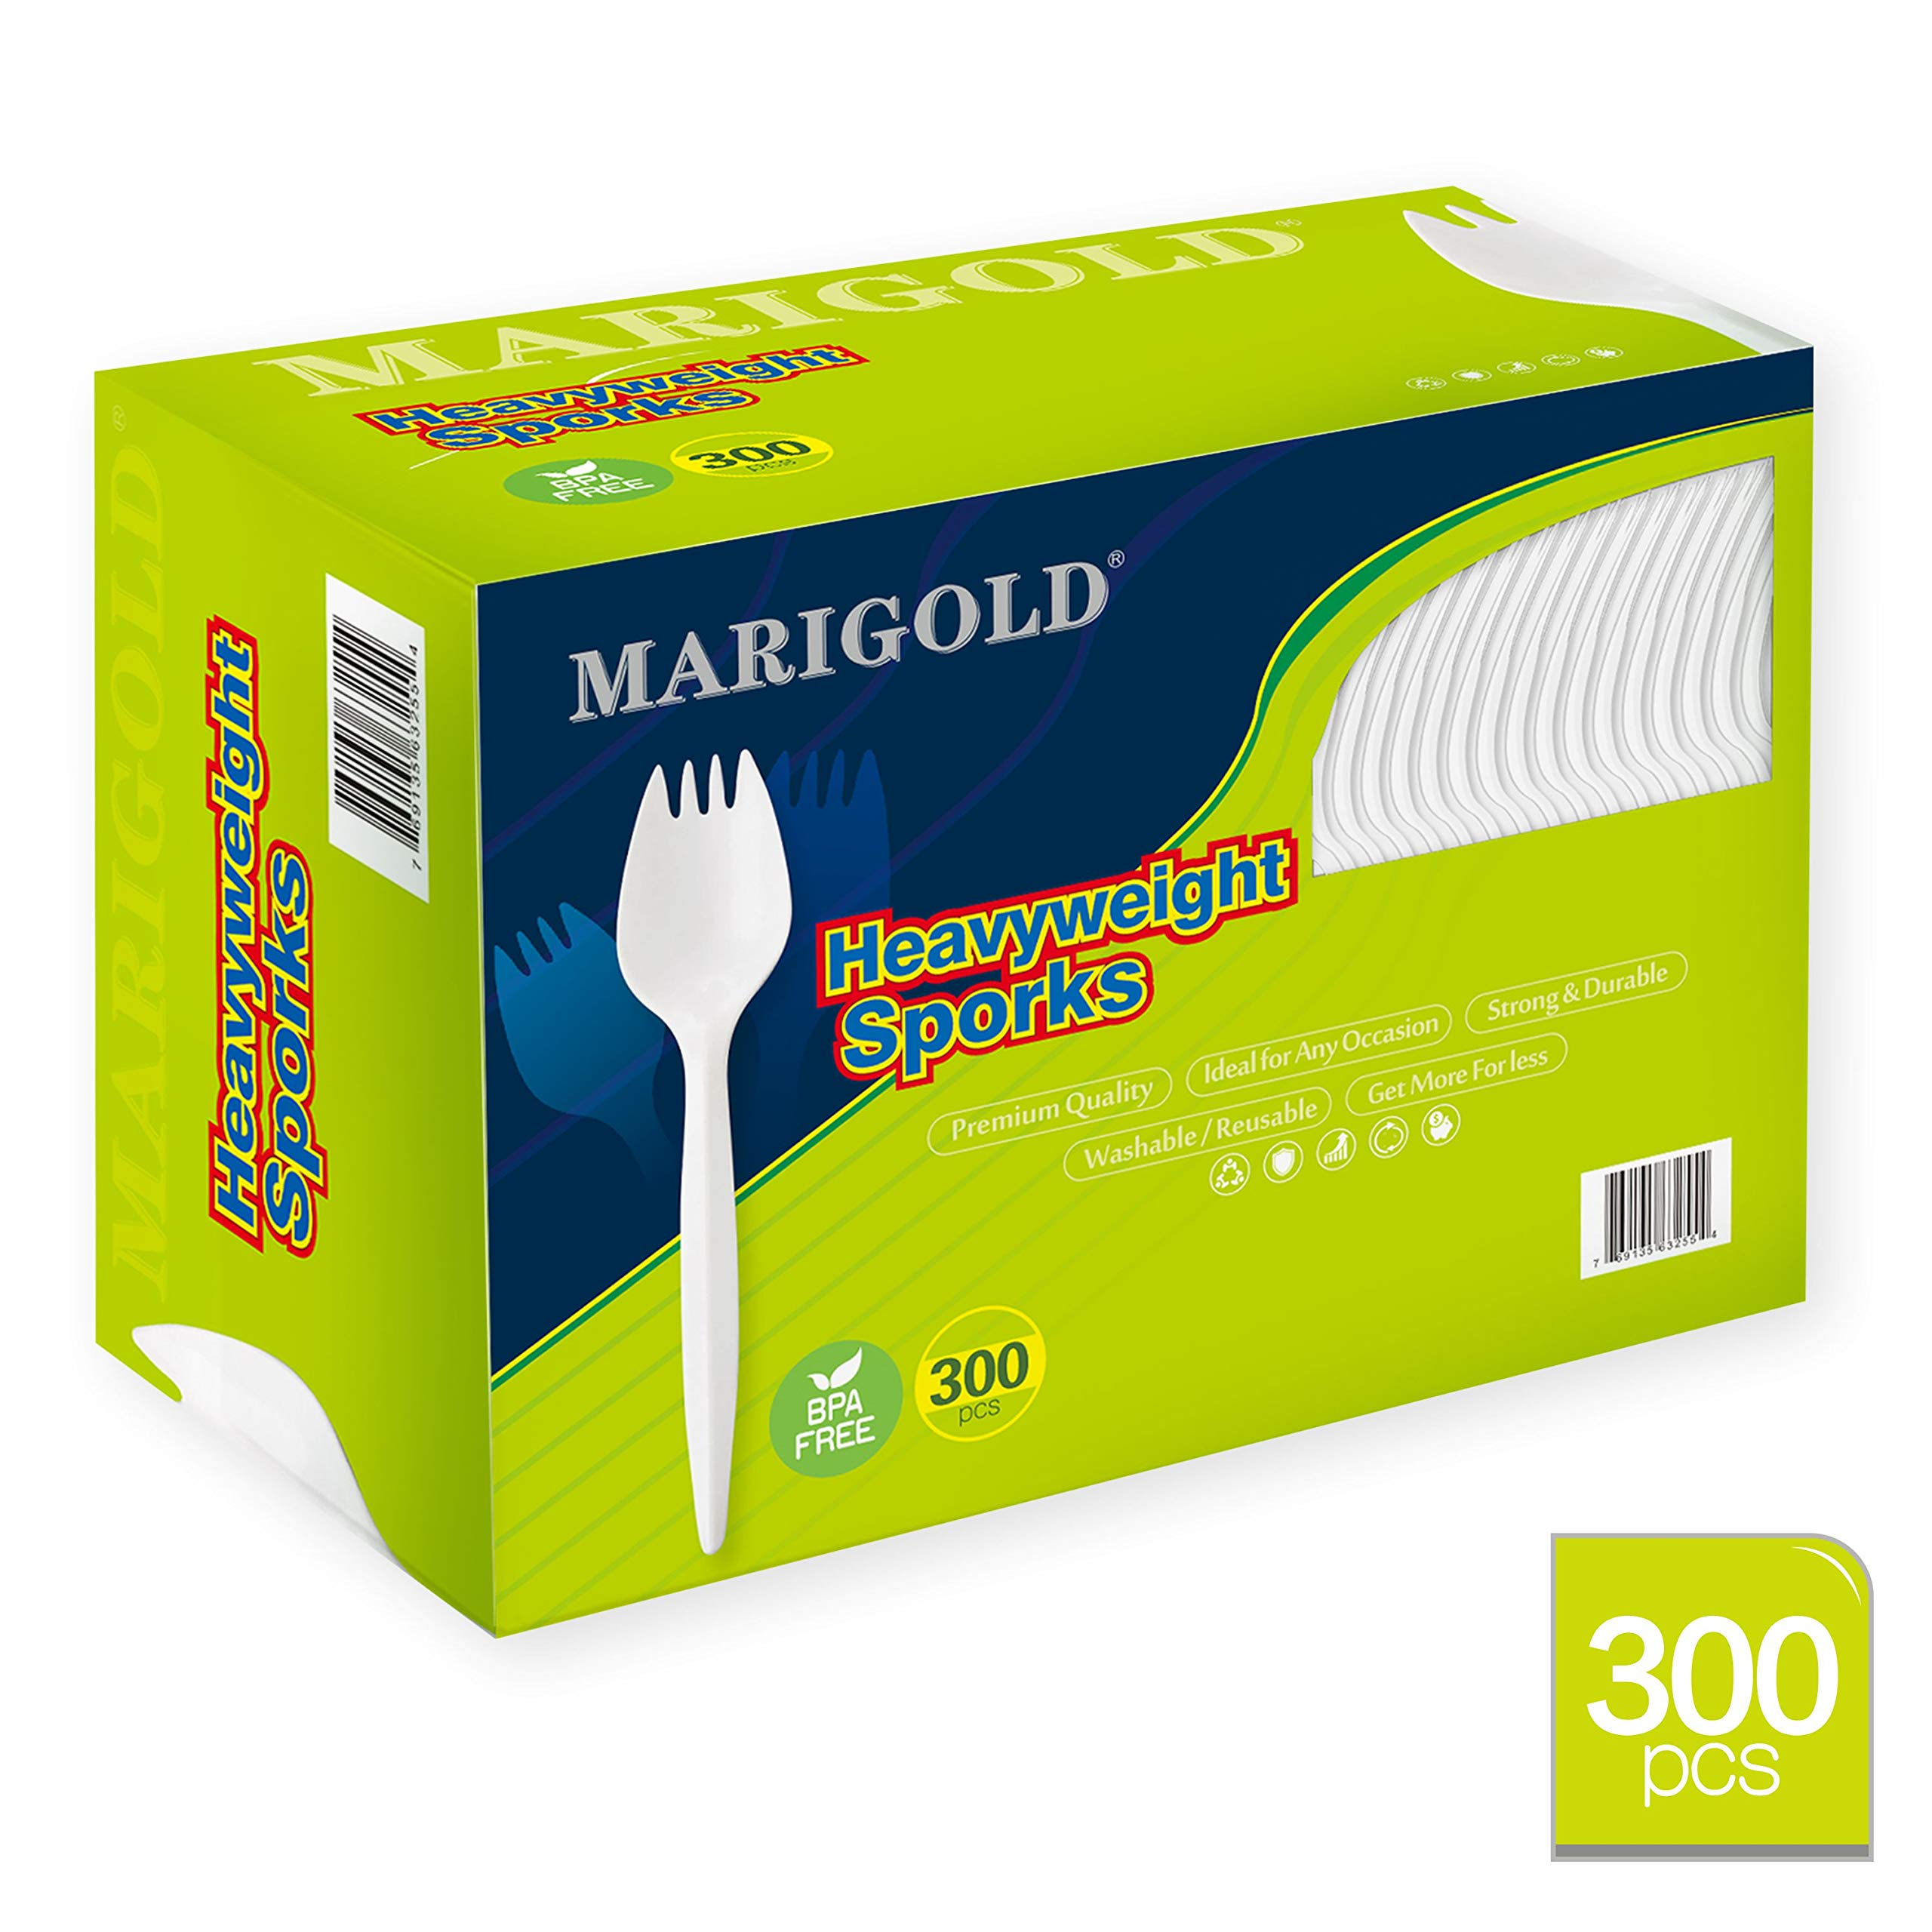 Heavy-weight Disposable Sporks 300Pk BPA-Free - MARIGOLD Recyclable cutlery, Eco-Friendly and Kid-Safe Utensils, Great for School Lunch, Picnics or Restaurant and Party Supply Spoons and Forks by Marigold